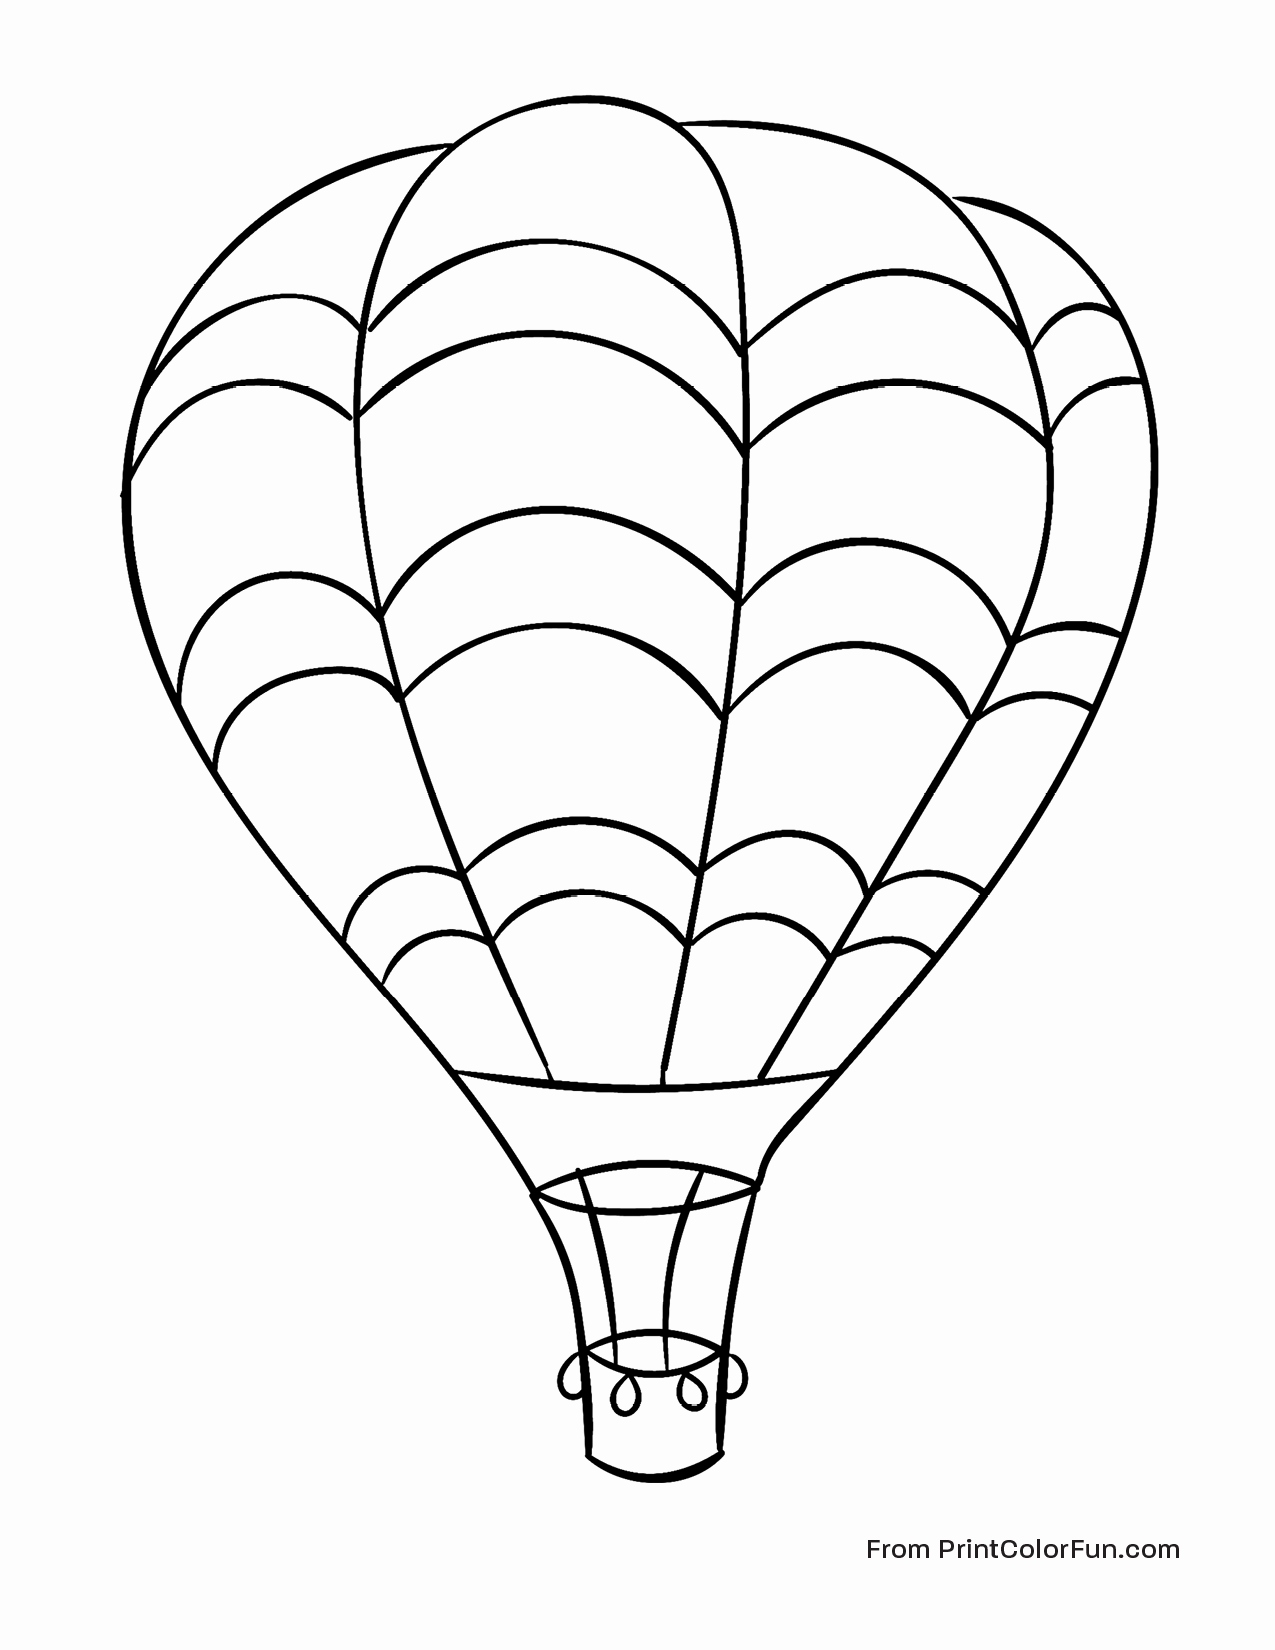 The Best Free Air Balloon Coloring Page Images Download From 879